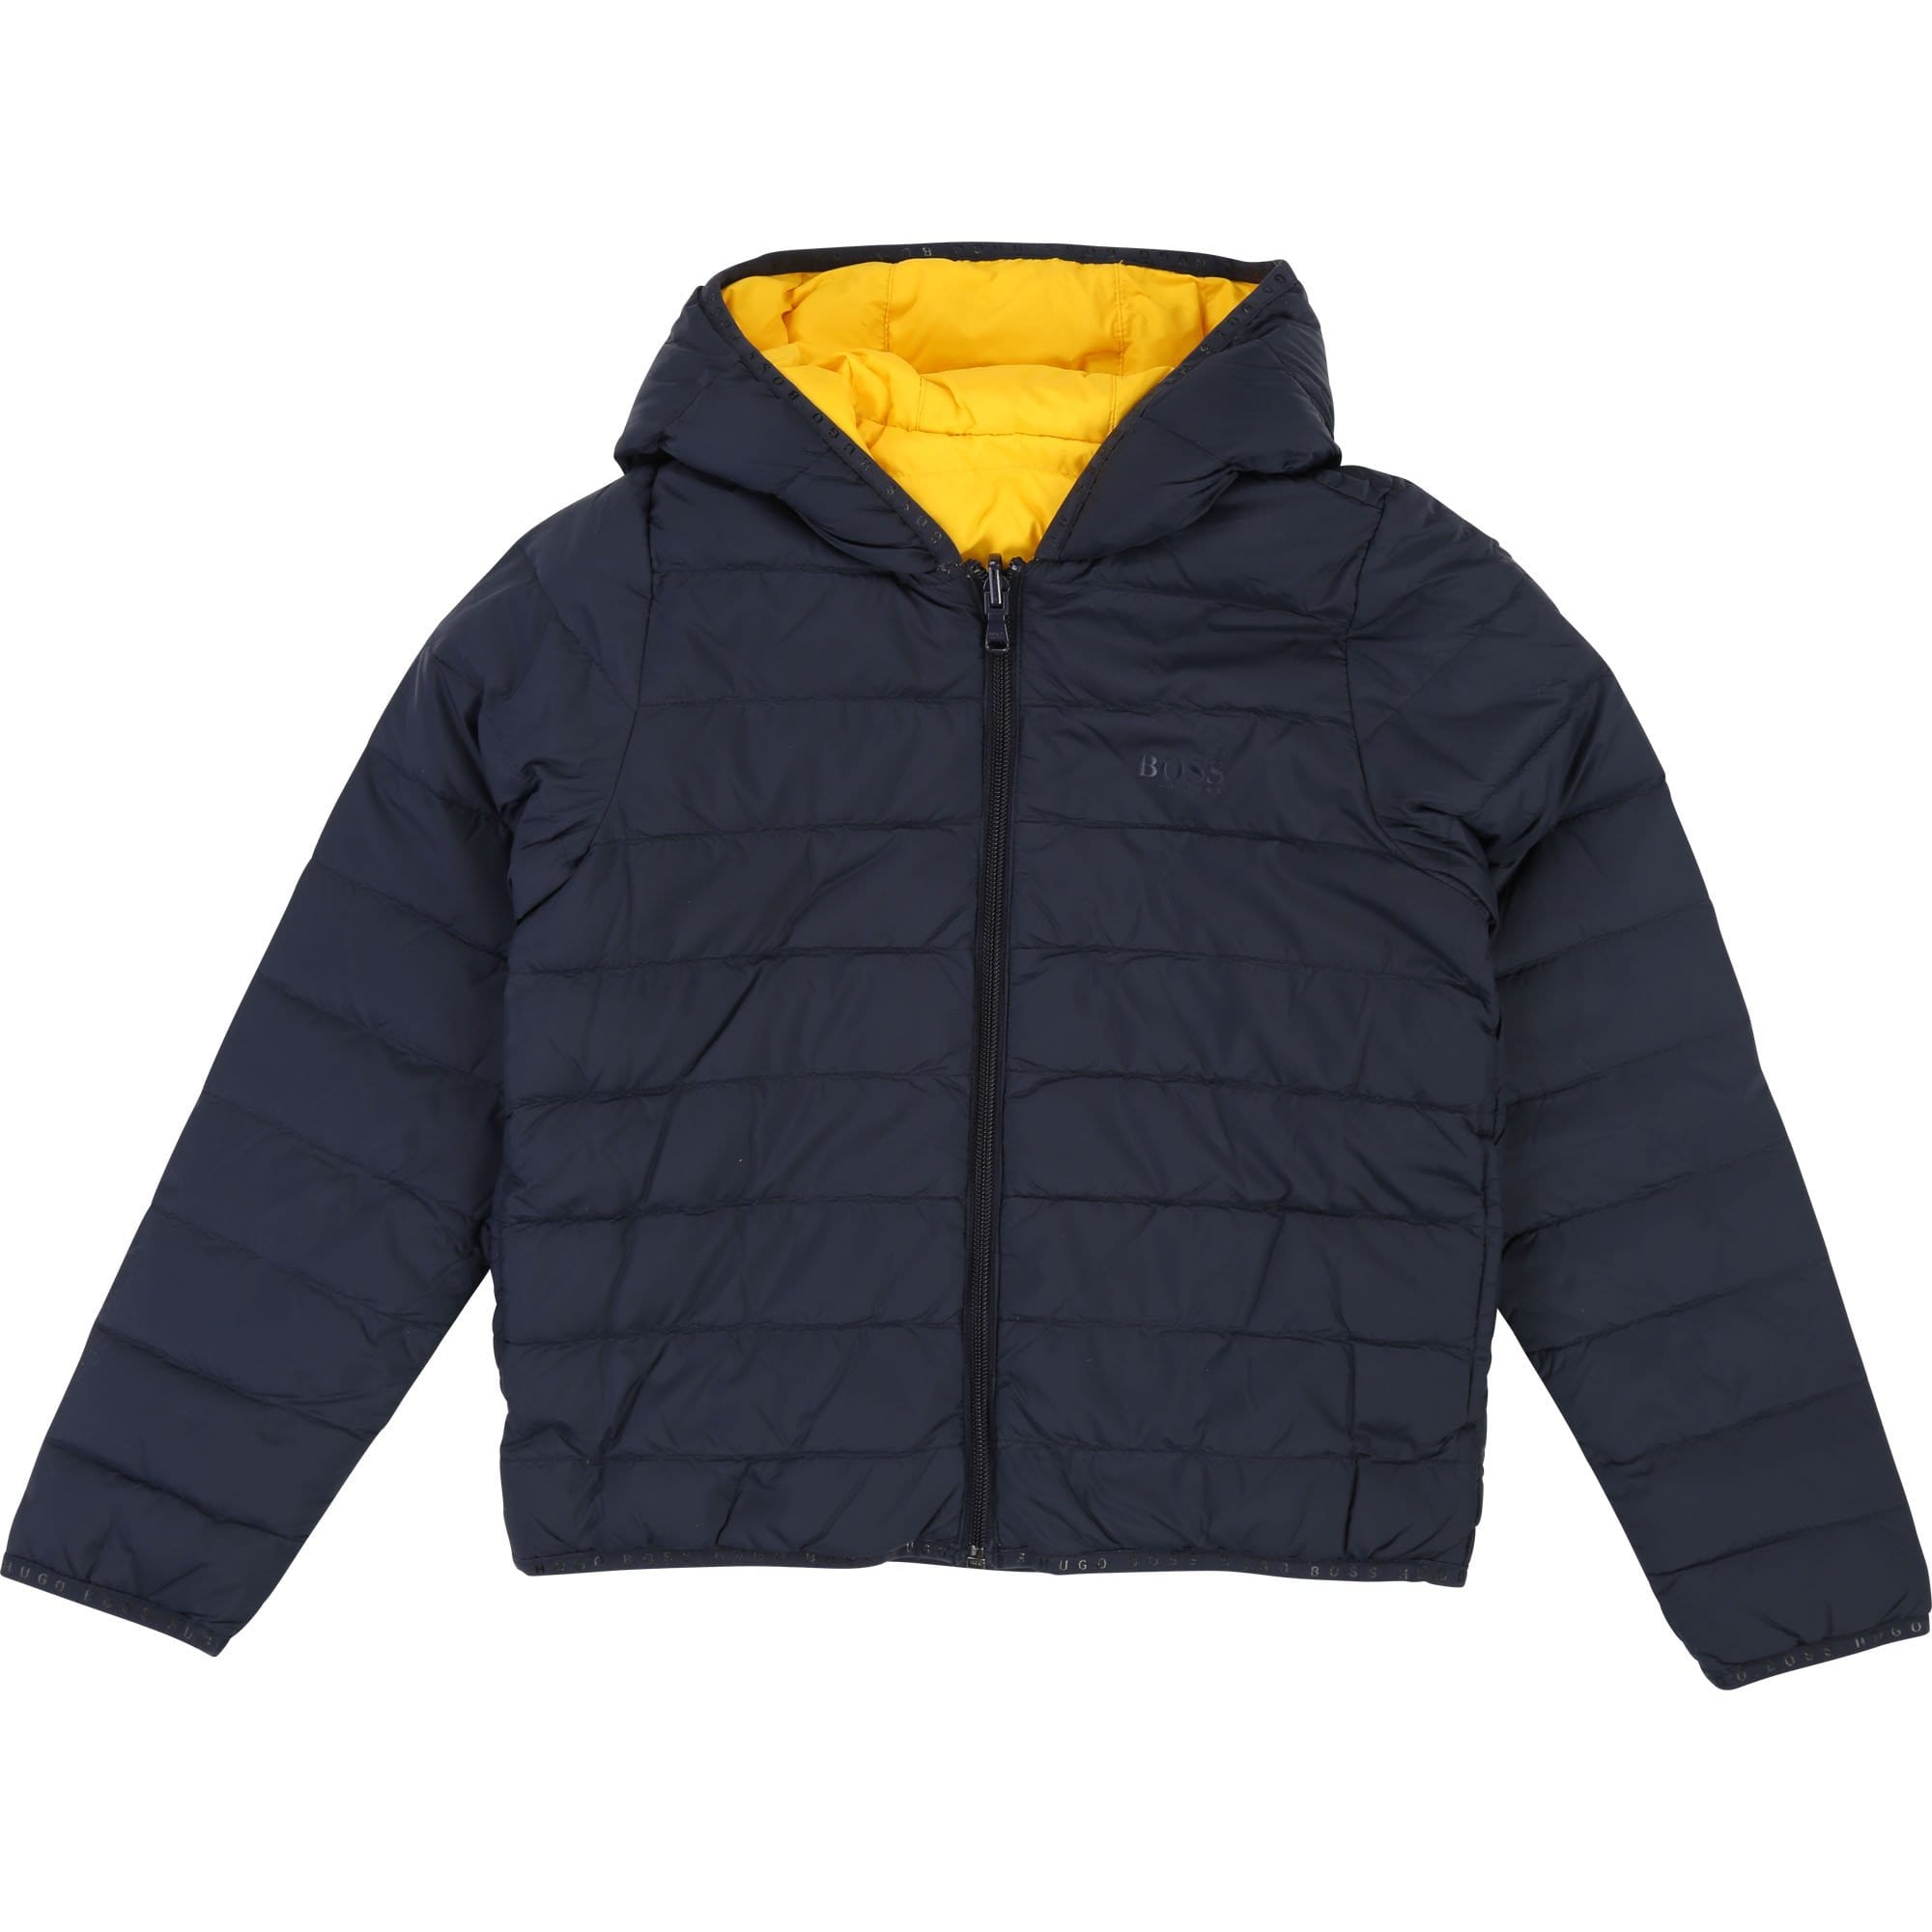 Hugo Boss Puffer Jacket Navy J26361/849